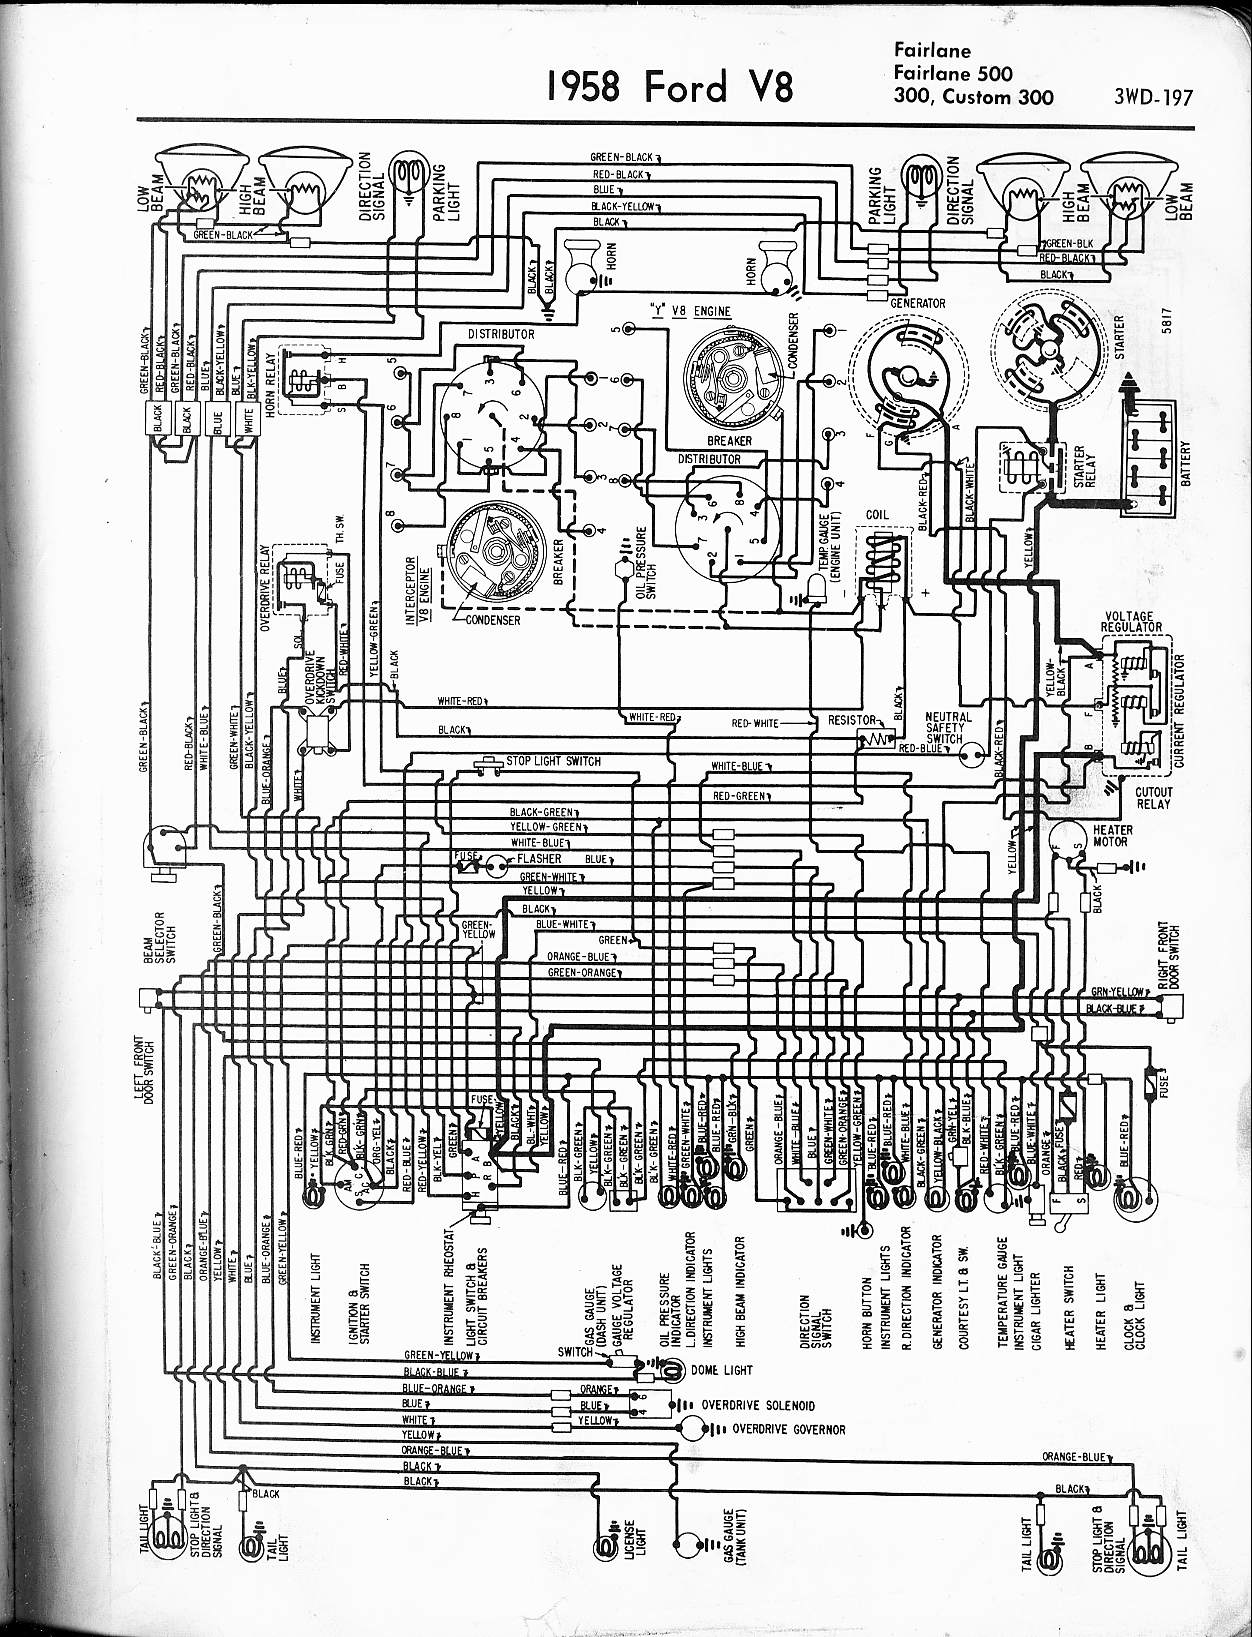 57 65 ford wiring diagrams dodge challenger wiring diagram 1958 v8  fairlane, 500, 300